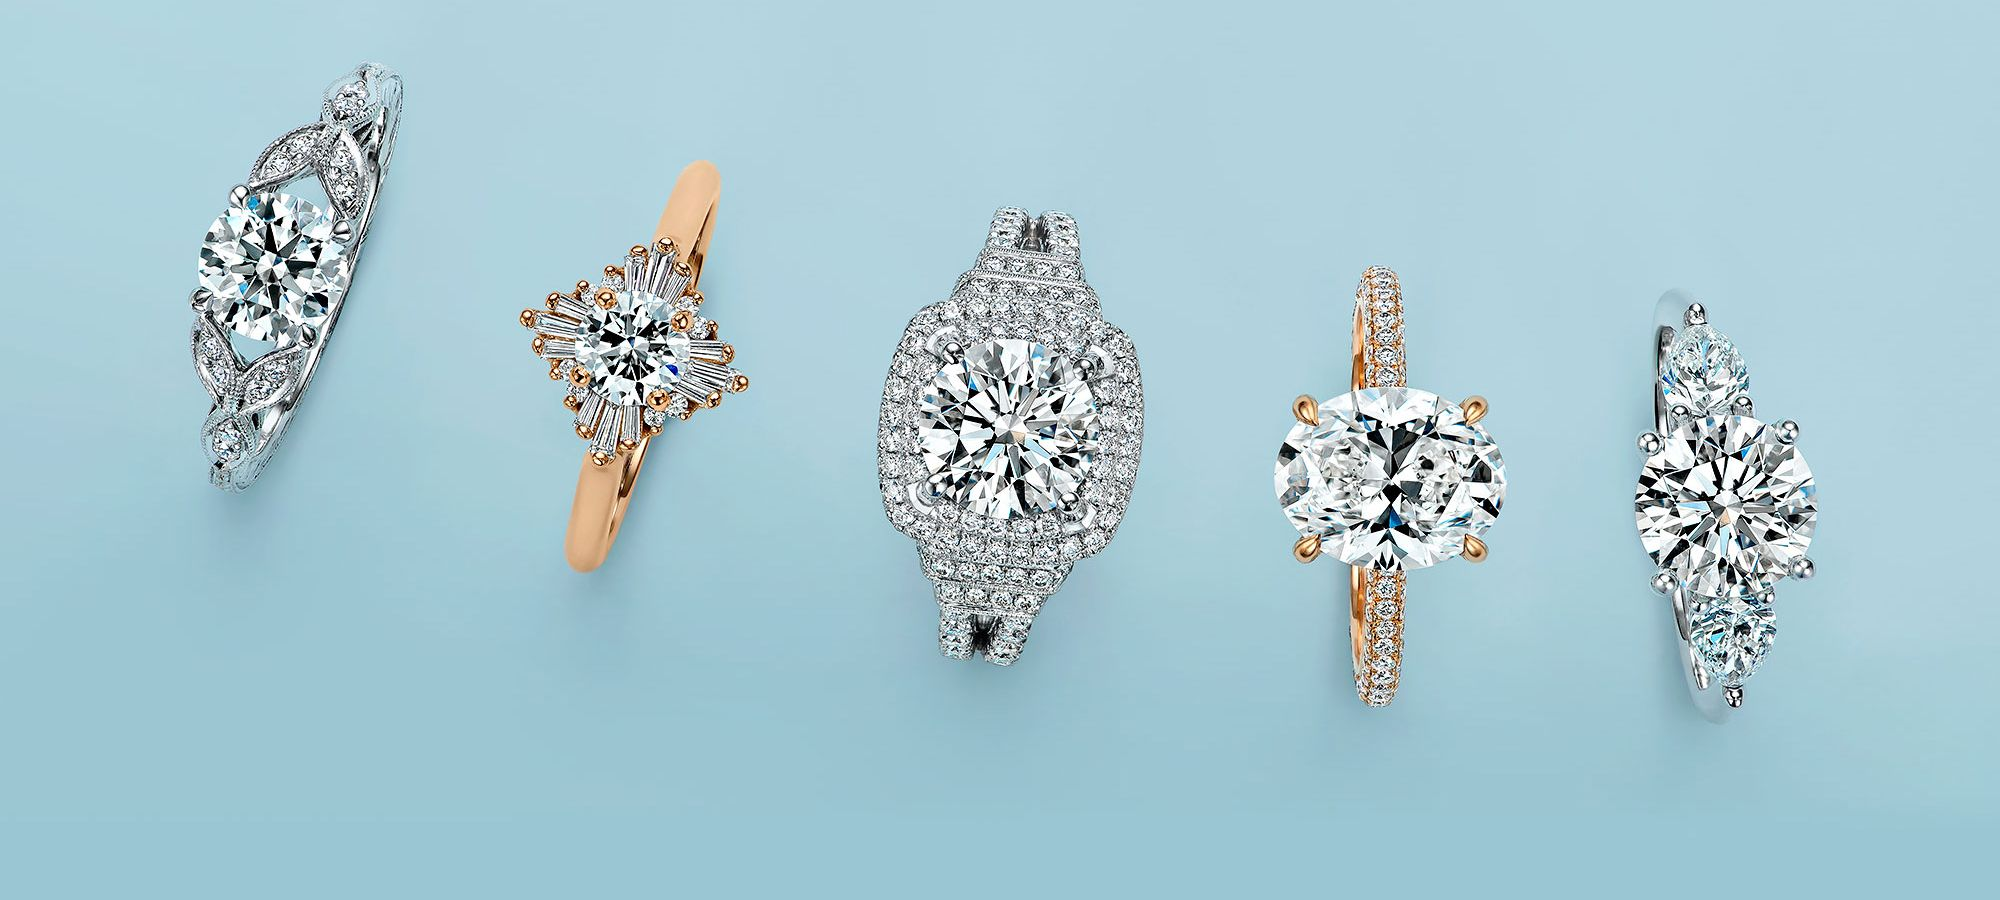 Engagement Rings Jewelry Seattle Bellevue Joseph Jewelry